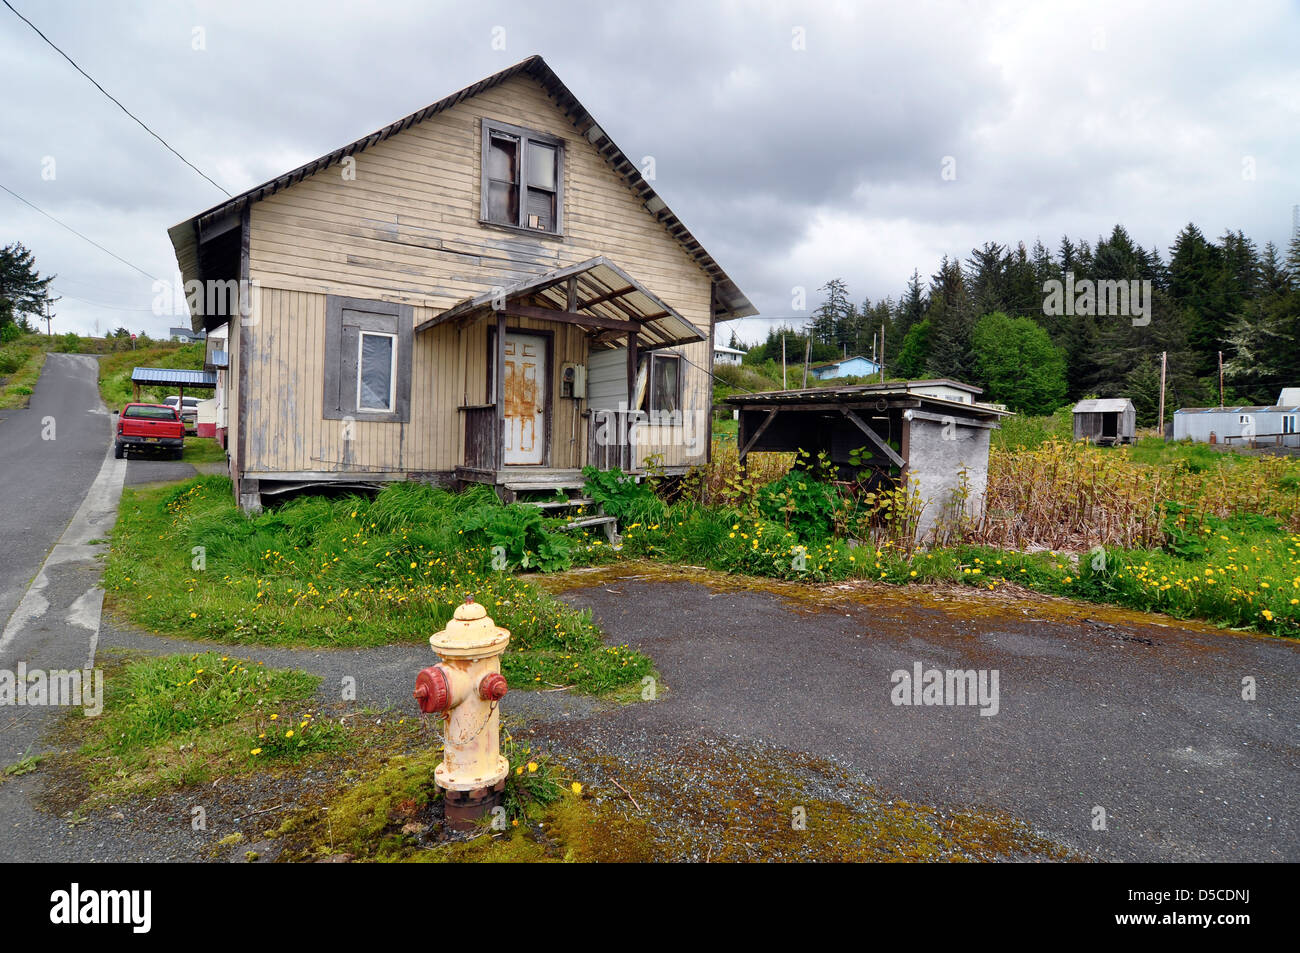 Fire hydrant in front of house in Kake, Alaska. - Stock Image